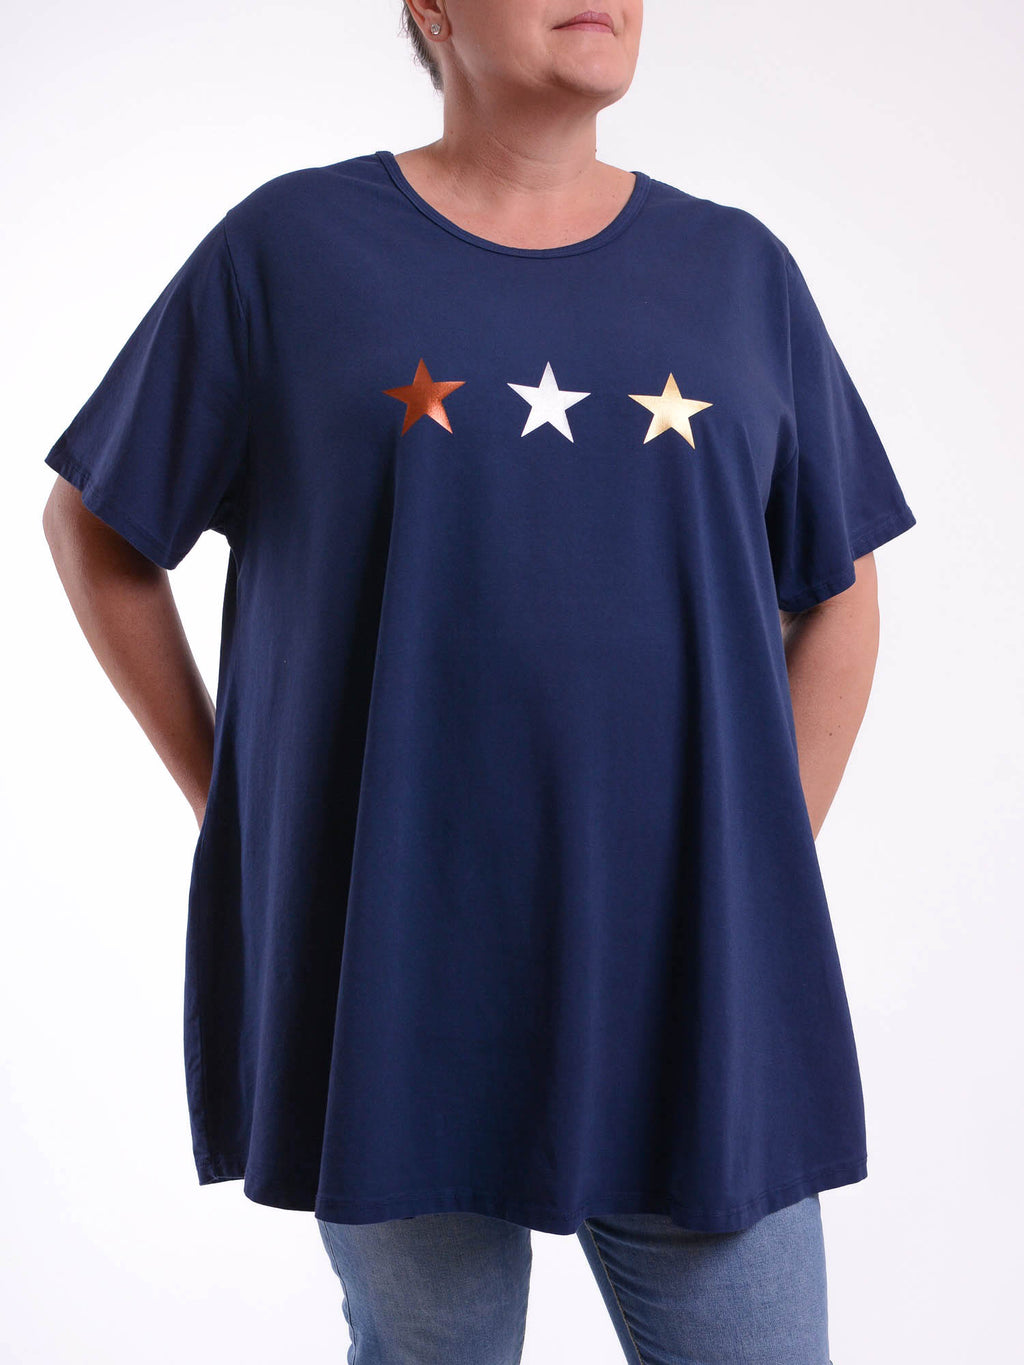 Basic Cotton Swing T Shirt - Round Neck 10516 3 STAR - Pure Plus Clothing